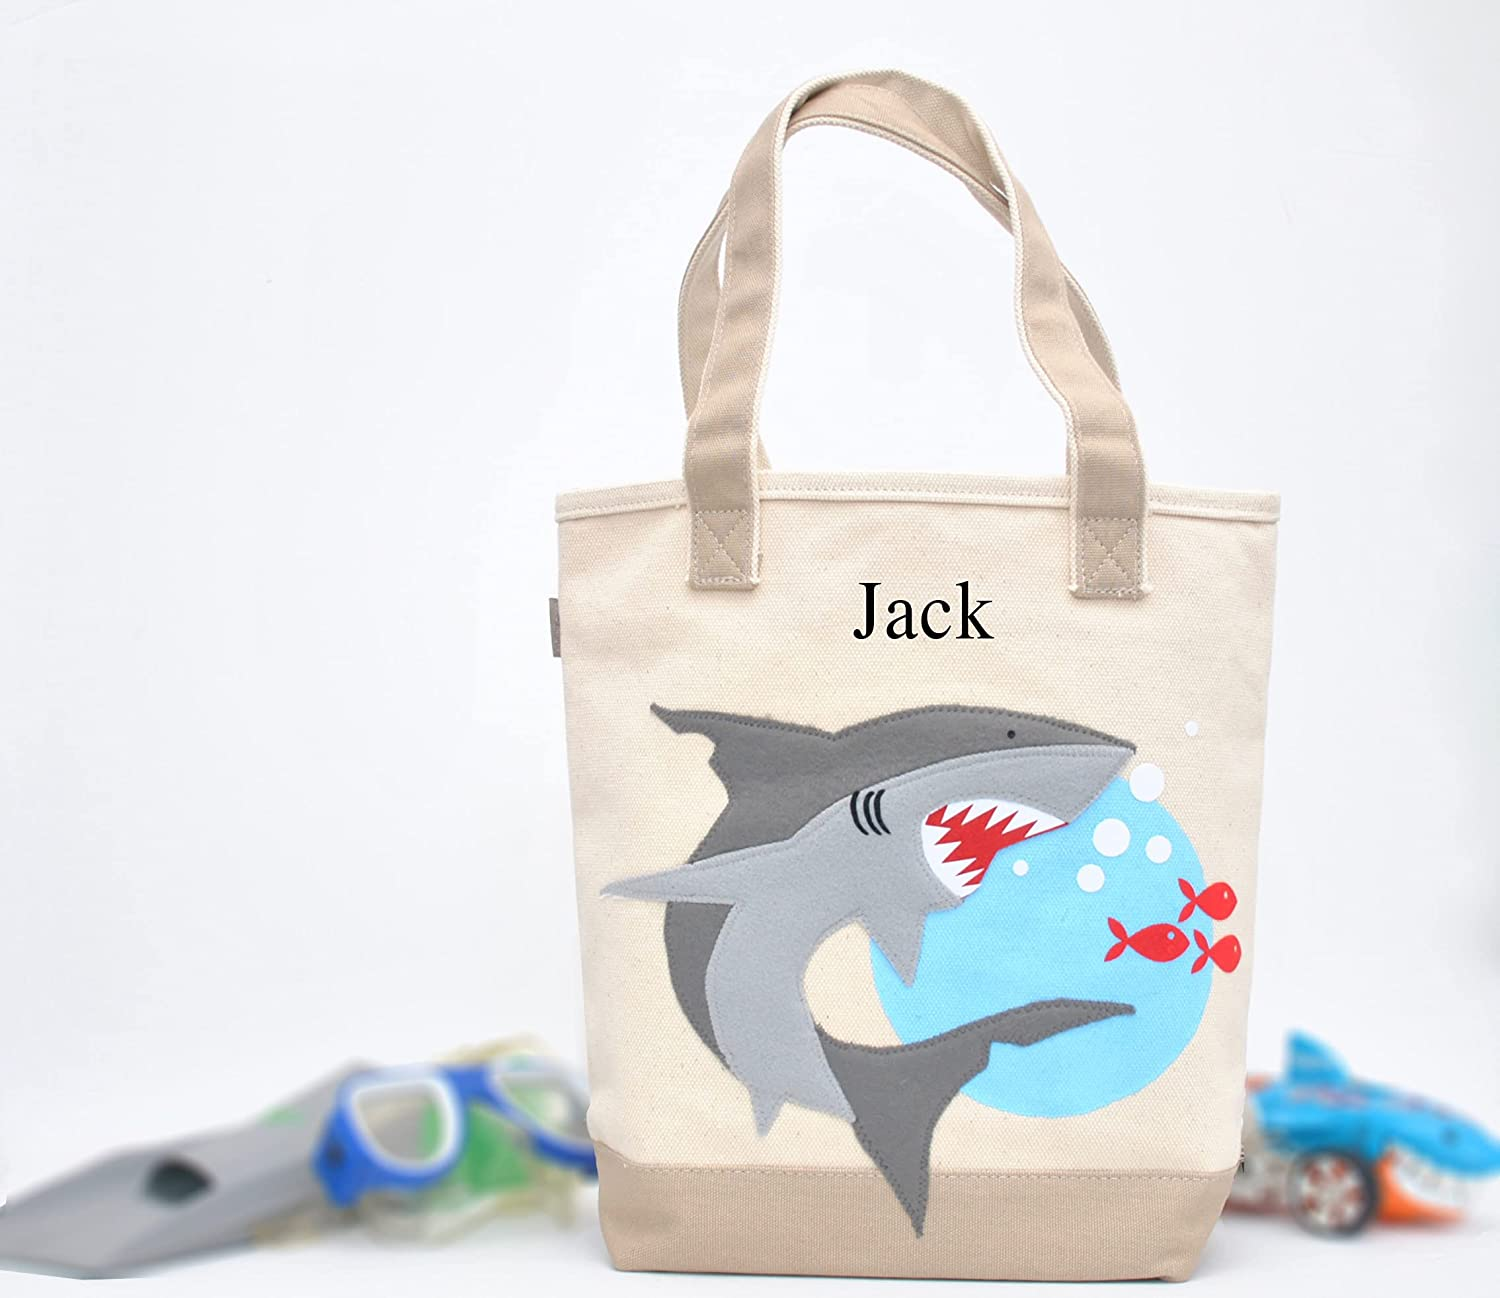 Cheap mail order specialty store Shark Tote Personalized Library bag At the price of surprise tote toddler Presch Boys